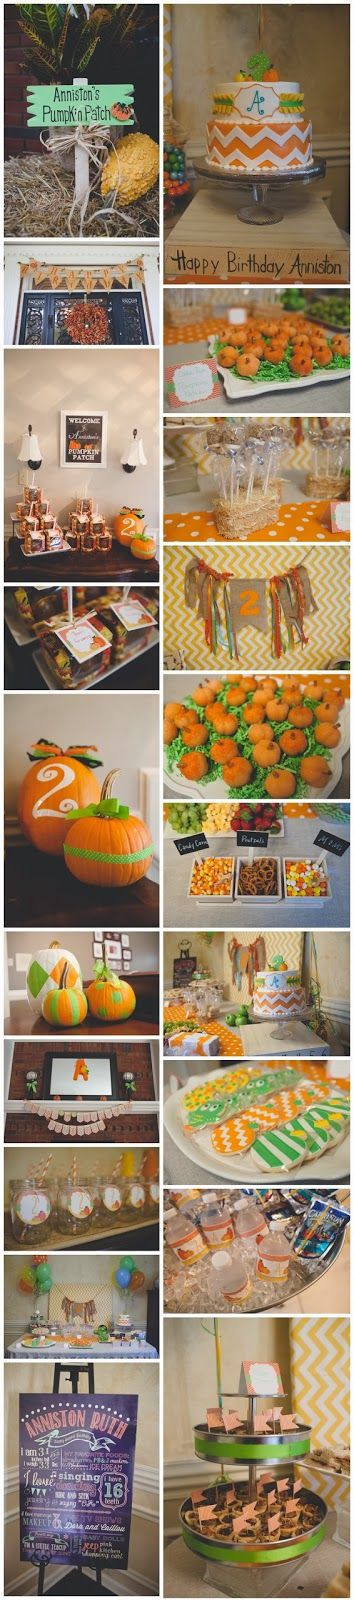 I had so much fun planning this party. I didn't battle too long with the theme- once the idea of a pumpkin patch party hit me, I knew tha...